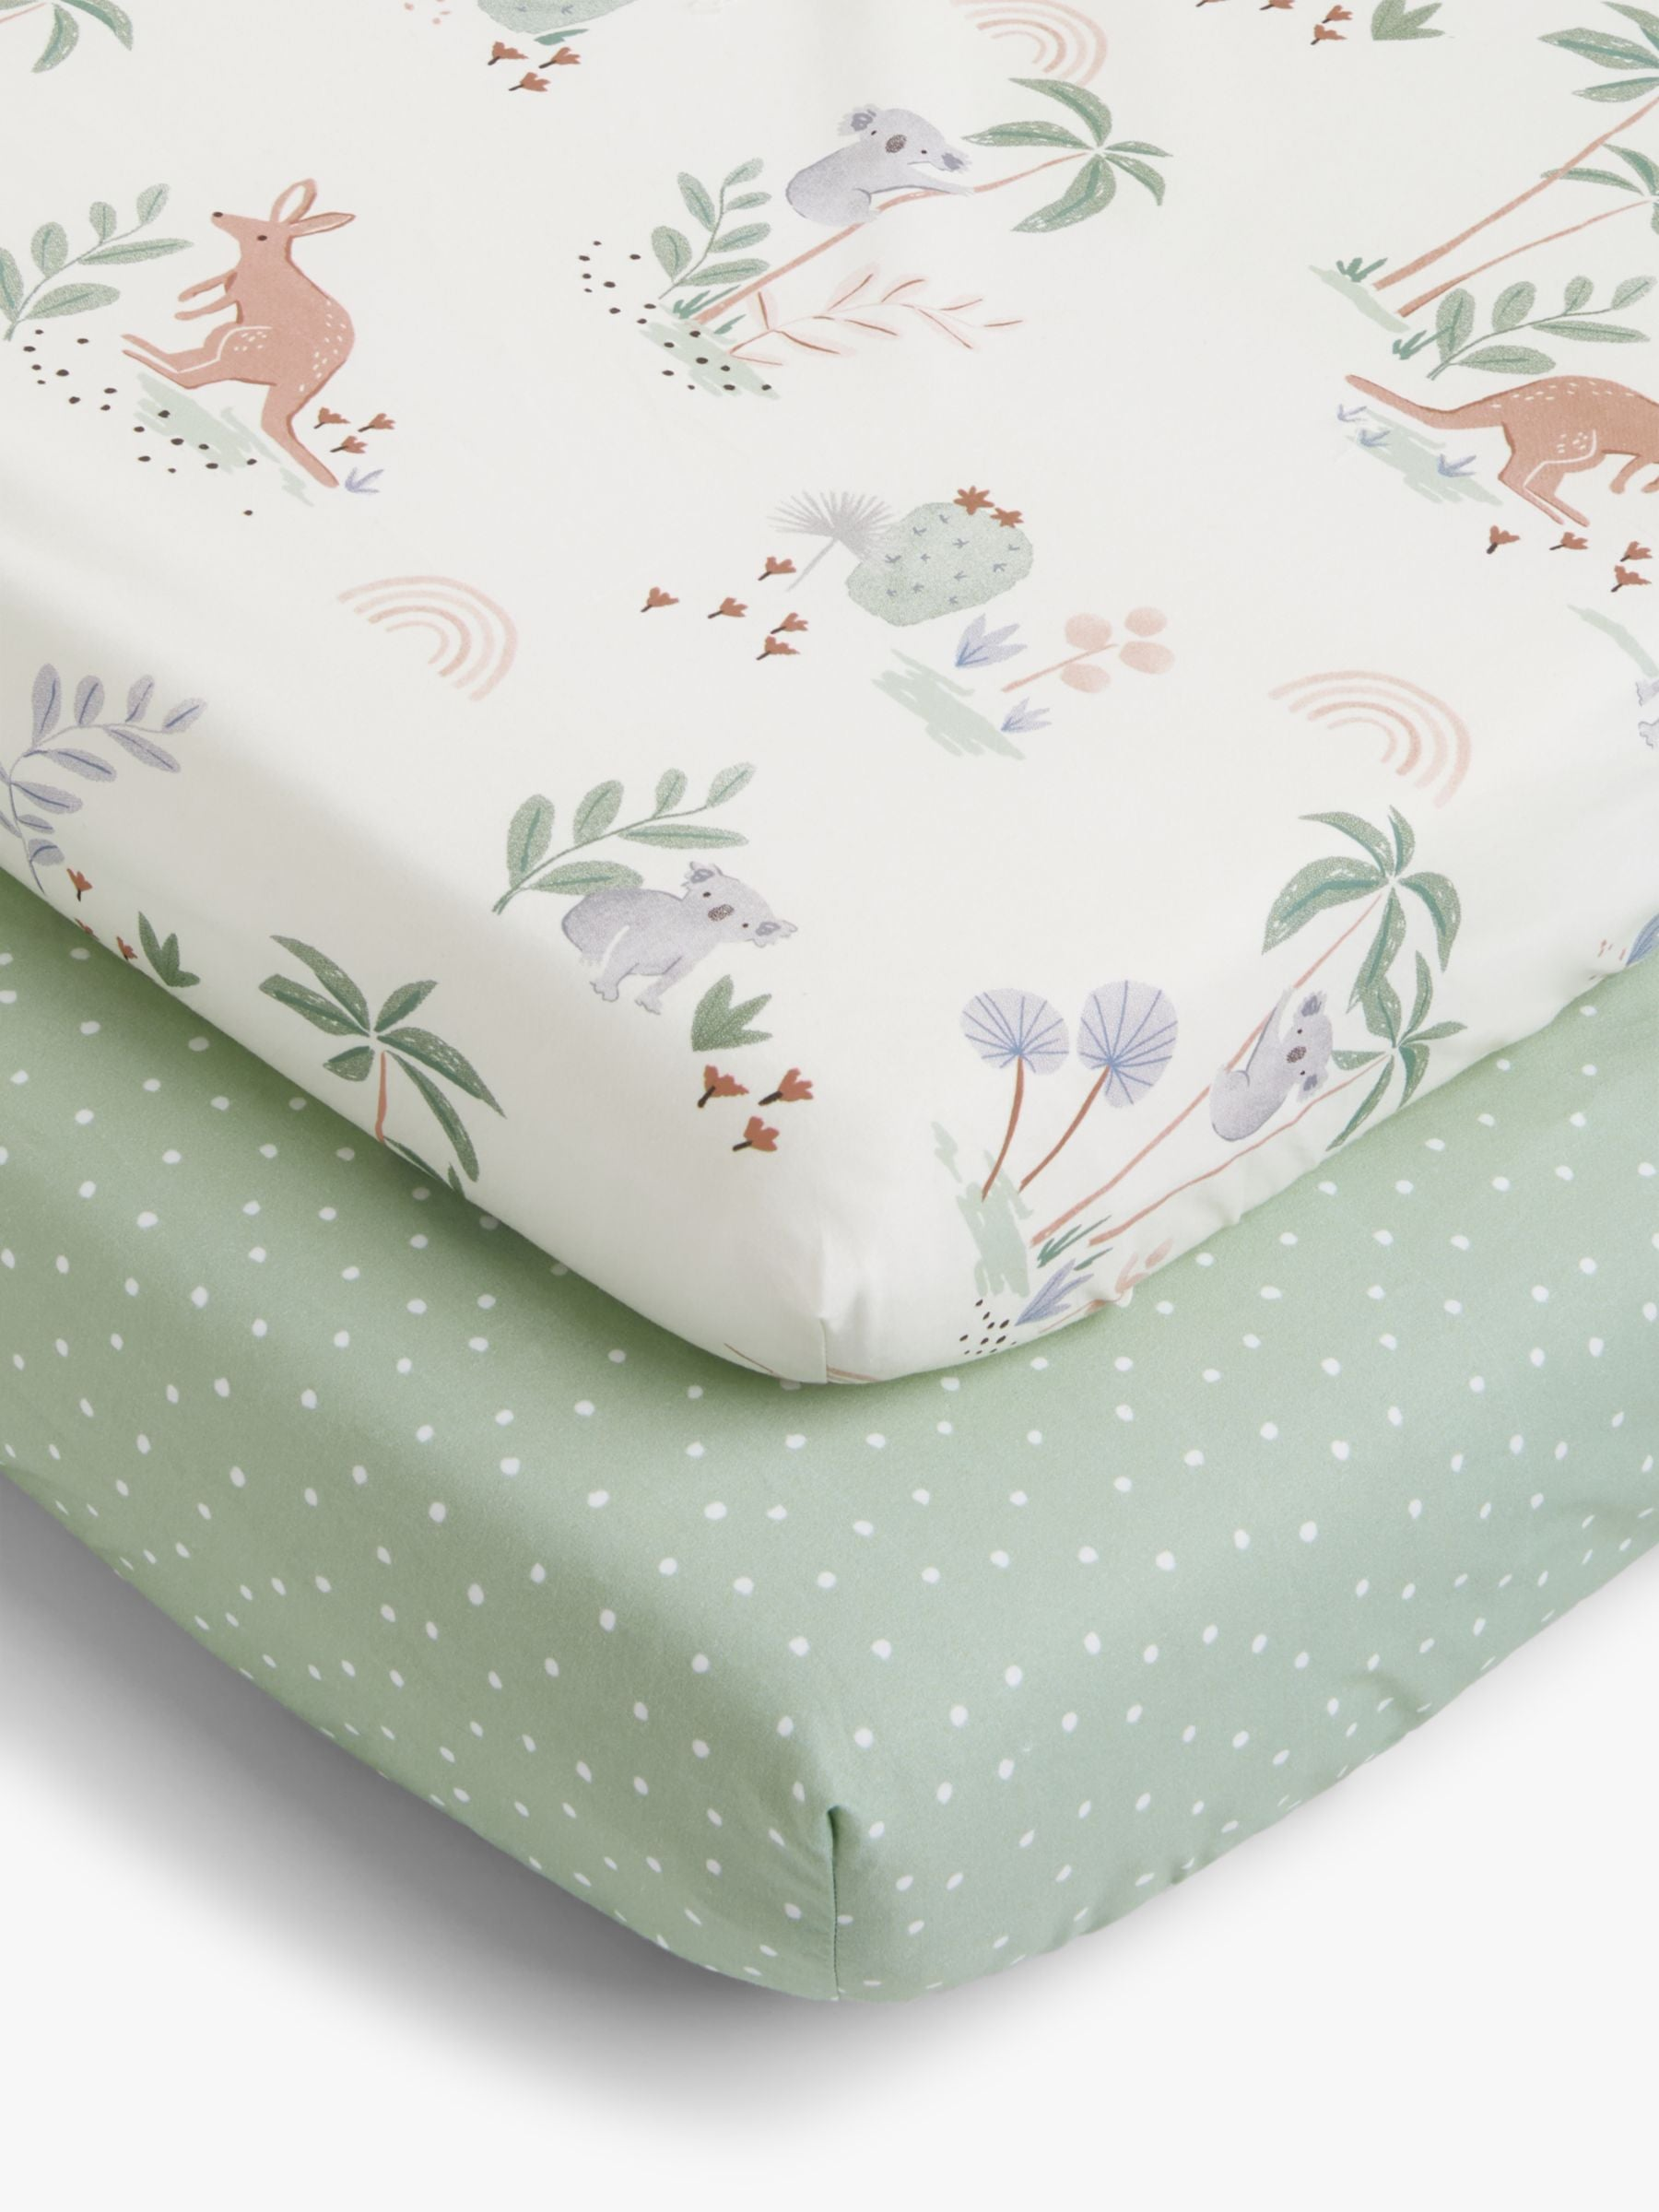 John Lewis & Partners Outback Print Cotton Fitted Cotbed Sheet, 70 x 140cm, Pack of 2